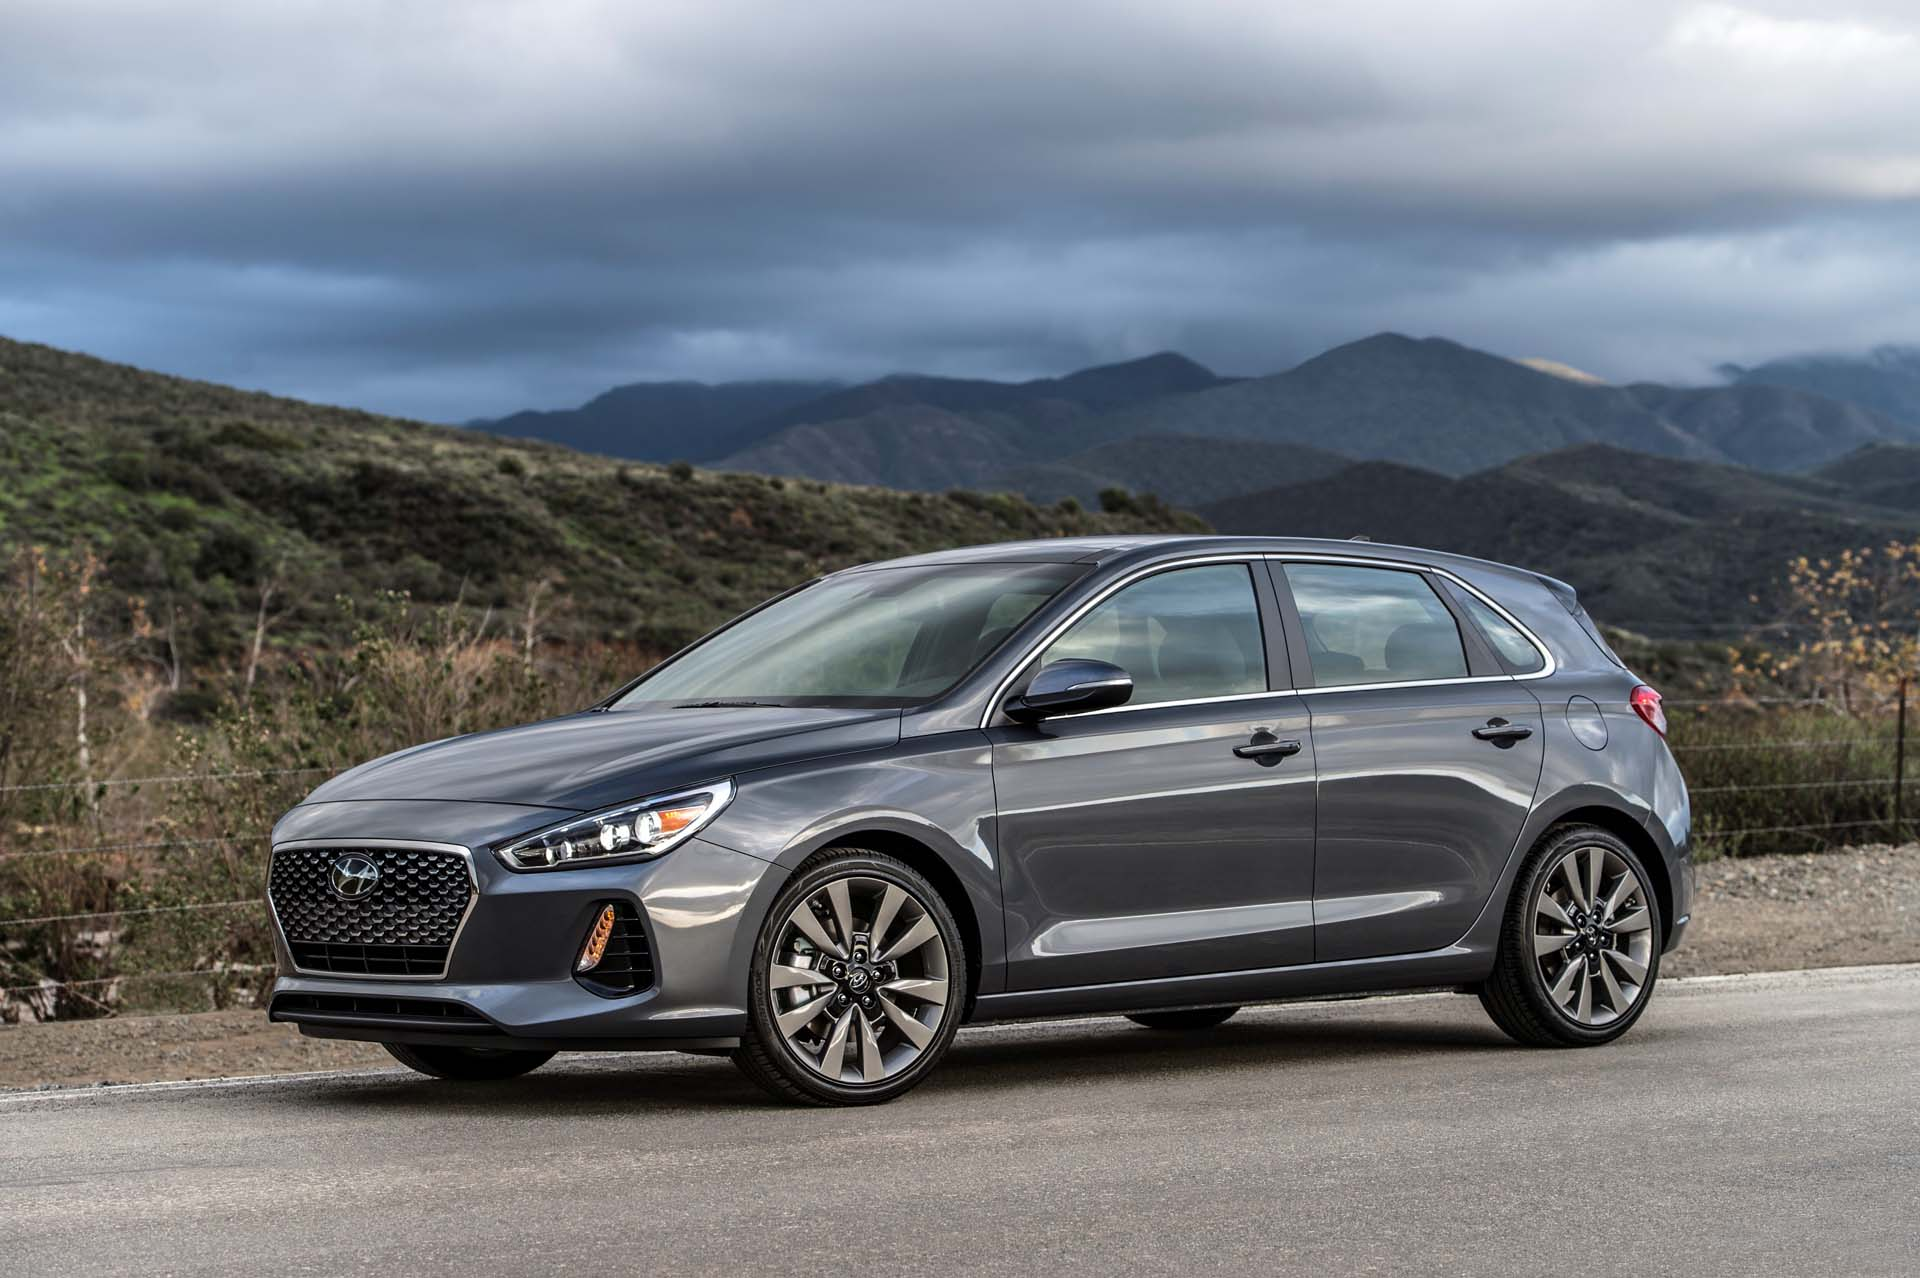 Best deals on hybrid, electric, fuel-efficient cars for March 2018